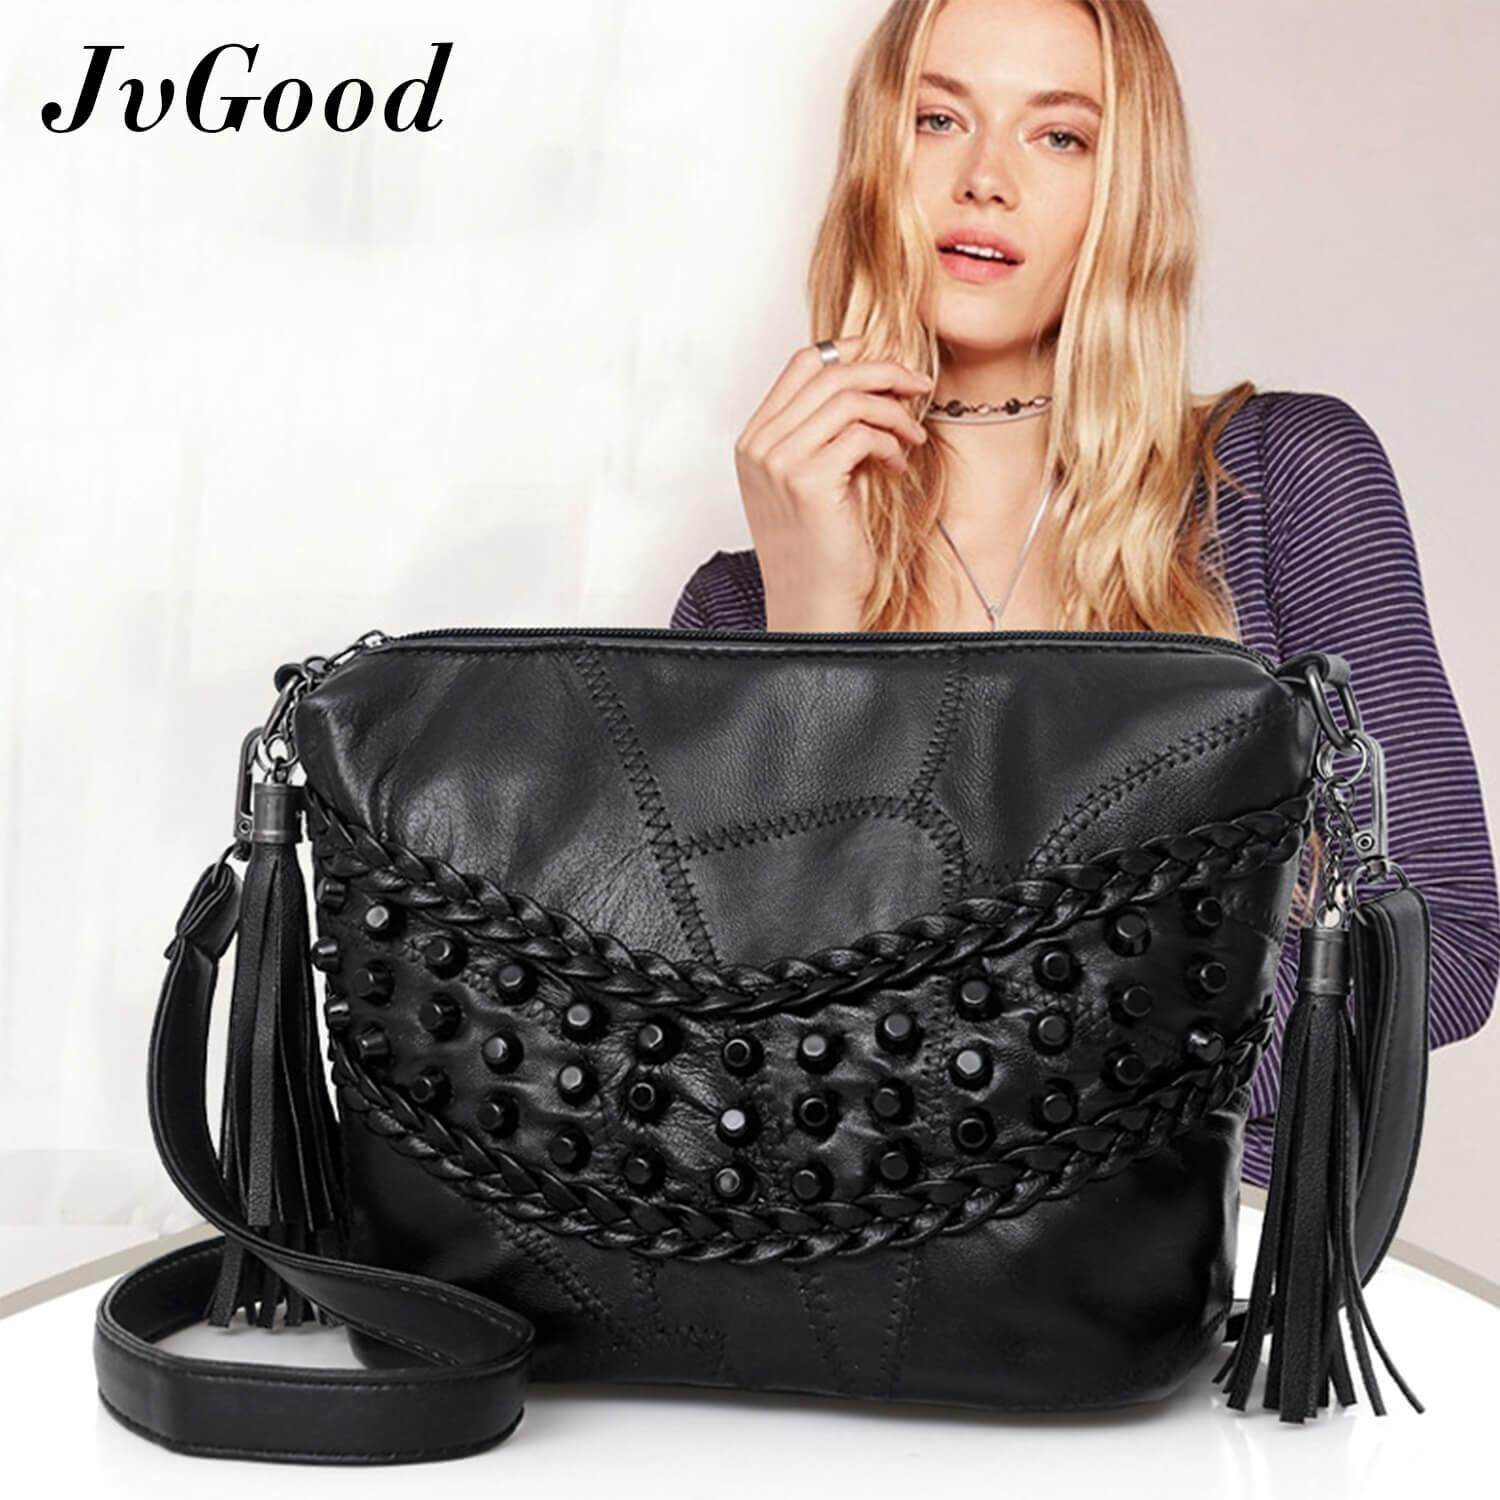 พัทลุง JvGood กระเป๋าสะพายข้าง CrossBody Shoulder Bag Purse PU Leather Messenger Bag Sling Bag with Tassel Satchel Bag Tote Purse Top Handle Handbag Backpack for Women Teen Girls